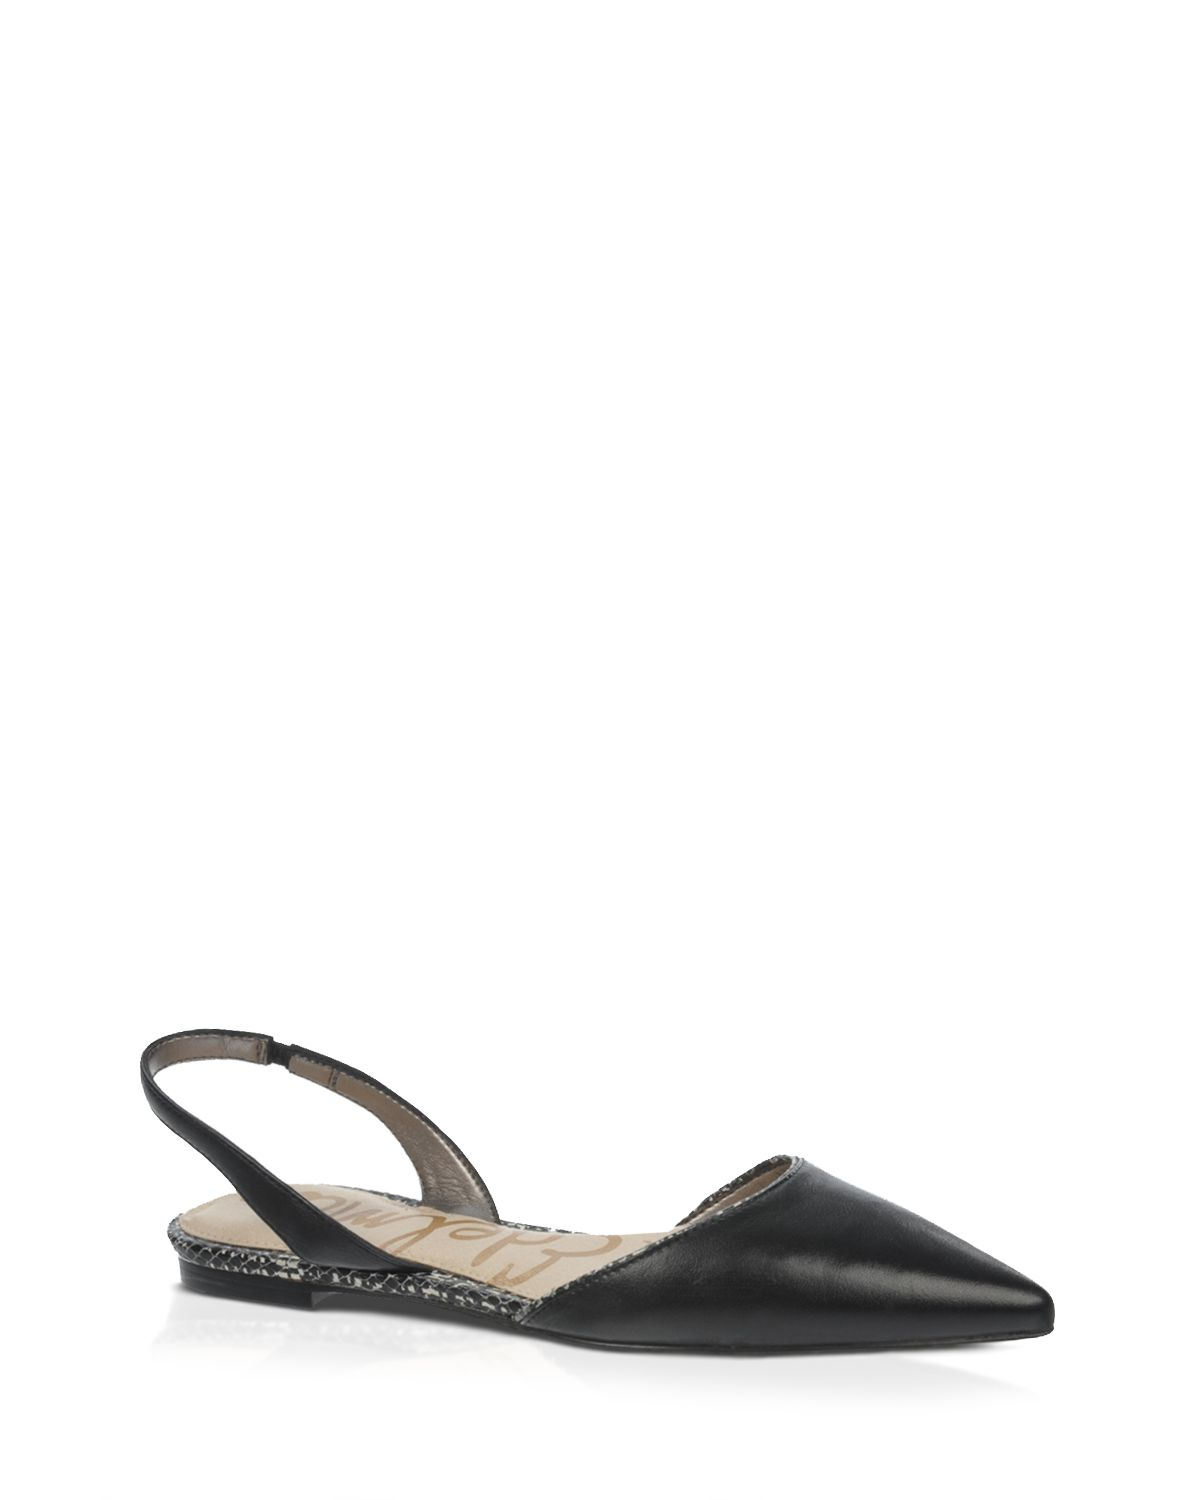 Sam Edelman Pointed Toe Slingback Flats Rory In Black Lyst